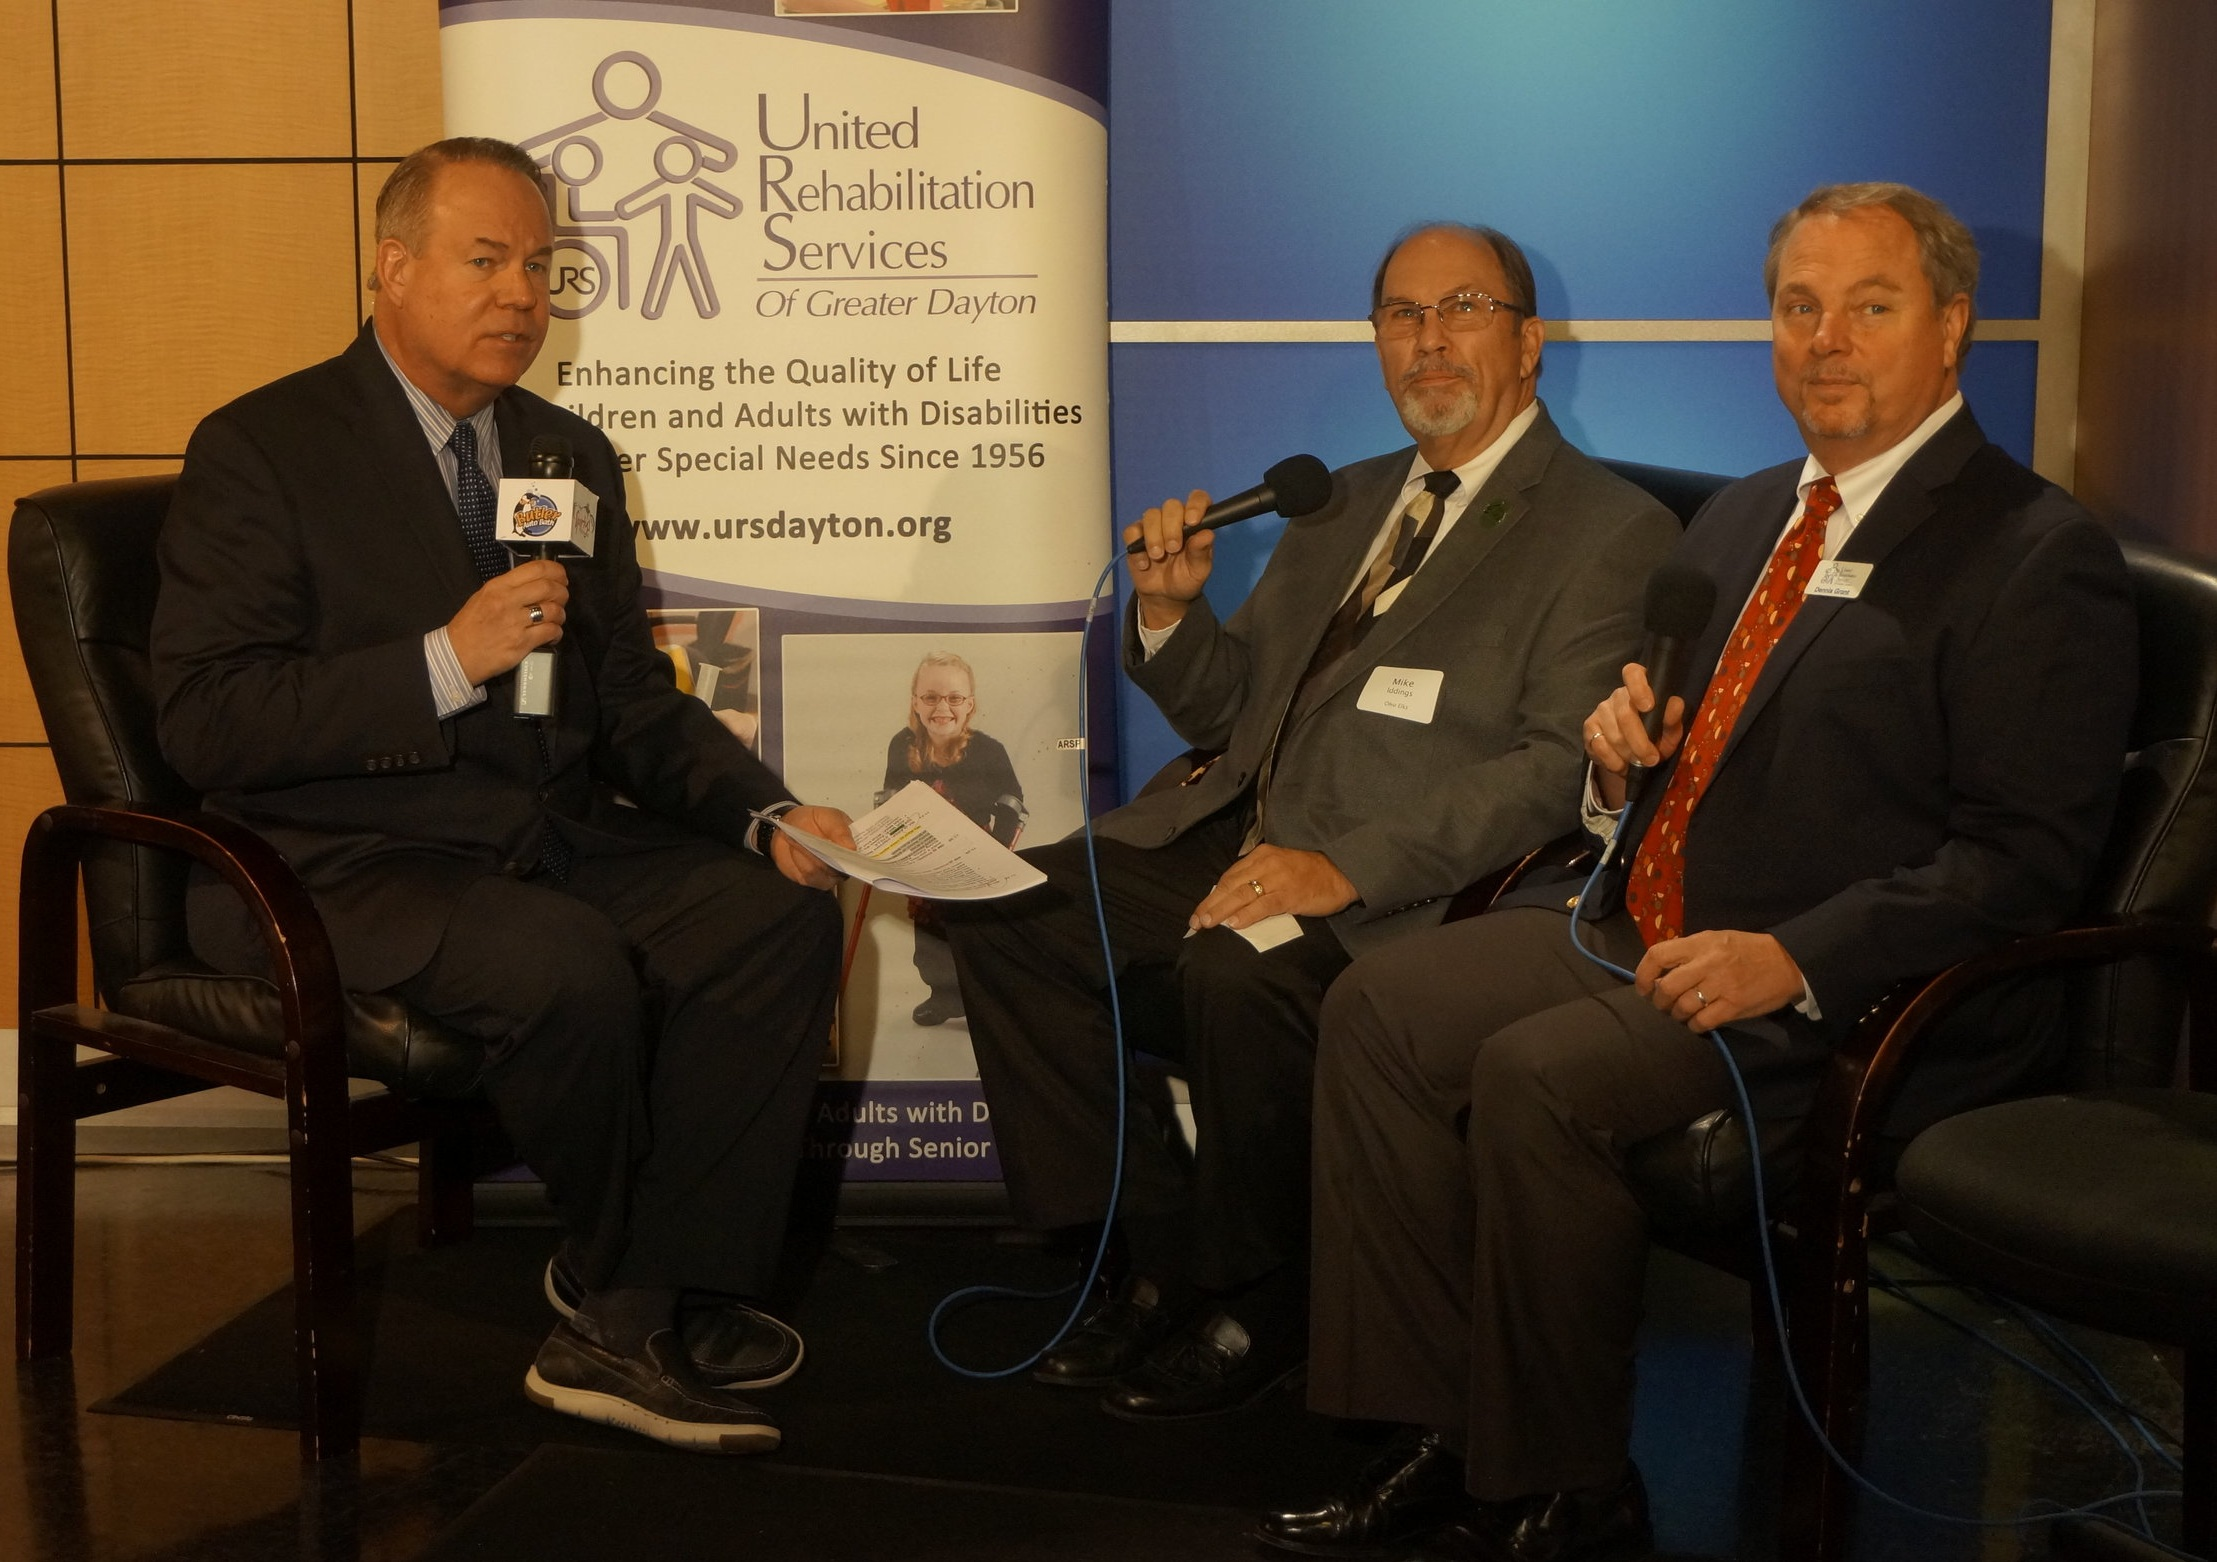 From left, Mark Allen, WDTN and Host of the Telethon; Mike Iddings, Lodge CP Chairman (representing both the Ohio Elks and the Dayton Elks) and Dennis Grant, URS Executive Director.